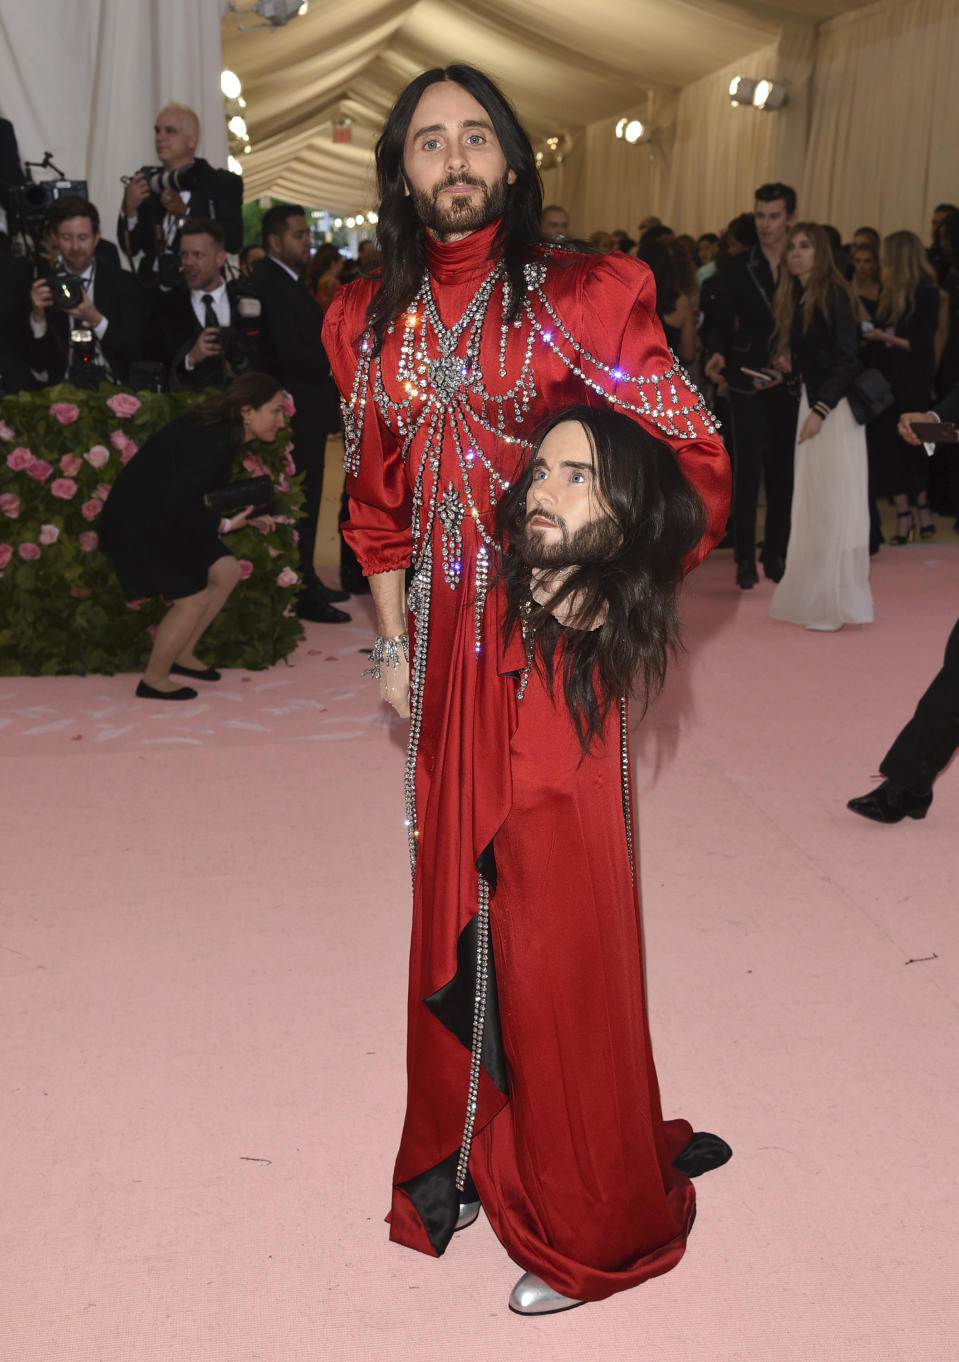 Oscar winner Jared Leto, holding a model of his own head, attended the Met Gala in a cascading red gown matched with a pair of silver heels. Photo: Getty Images